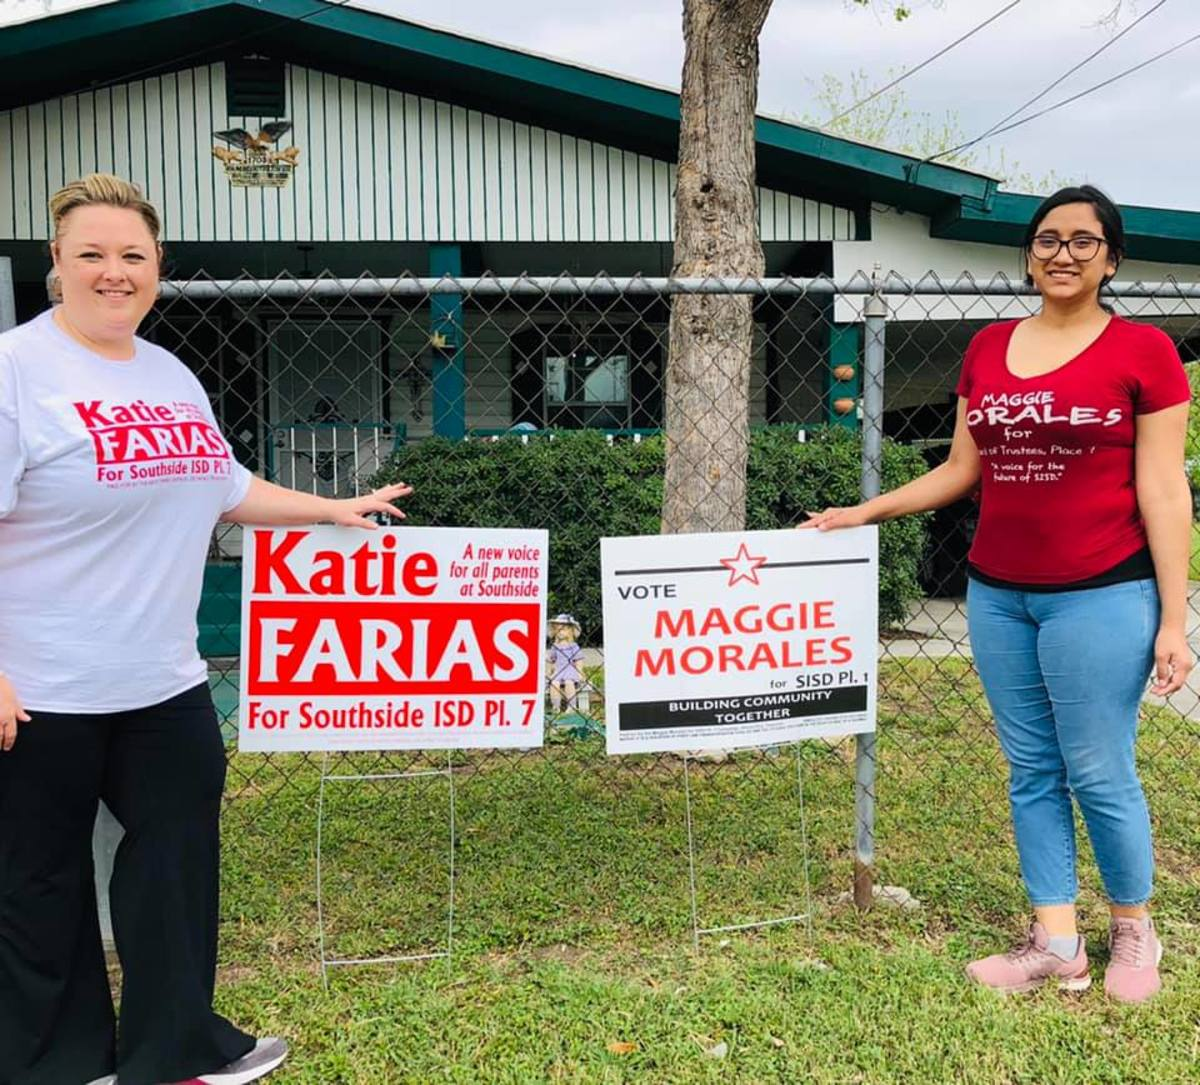 Katie Farias and Maggie Morales, putting out their signs. Southside ISD school board candidates for 2019.